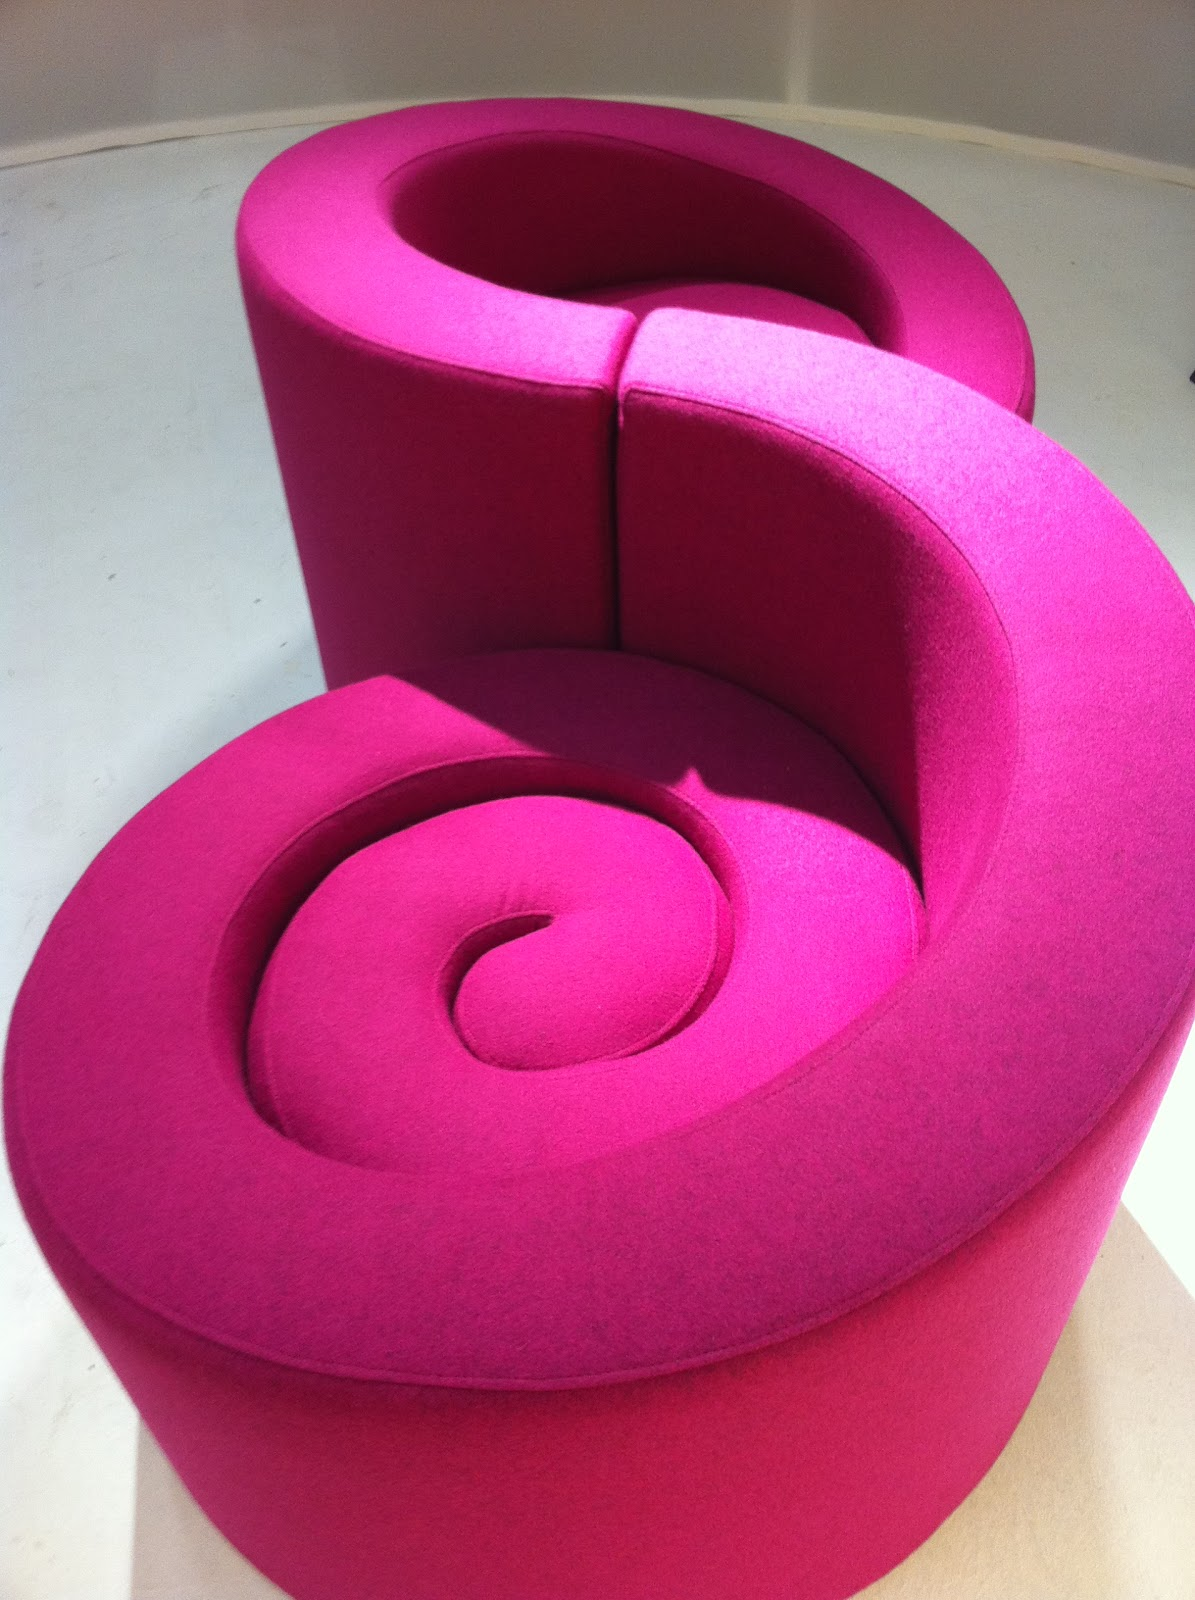 Fauteuils Vis à Vis Through The French Eye Of Design The Confident Chair